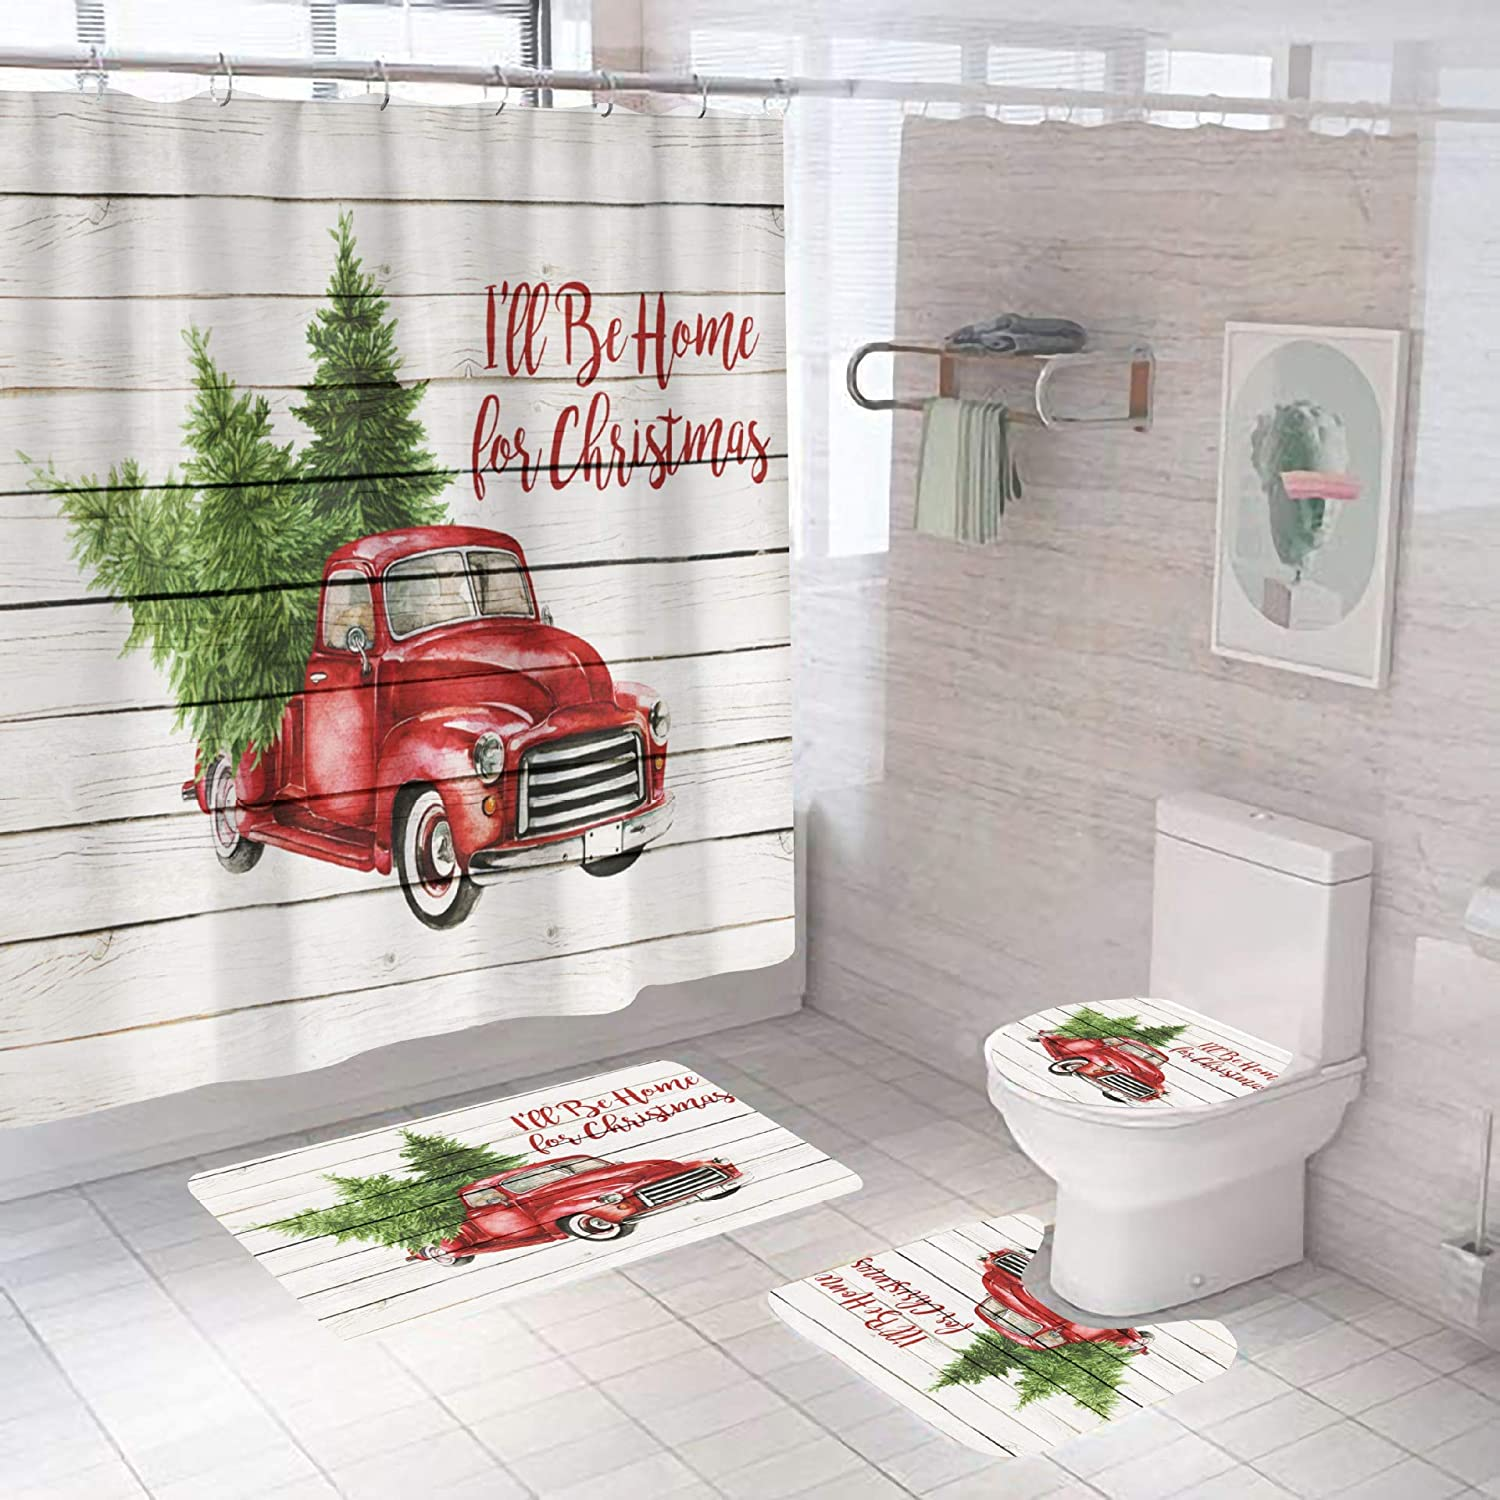 4 PCS Christmas Red Farm Truck Shower Curtain Sets with Non-Slip Rugs and Toilet Lid Cover Tree Rustic Wooden Fabric Bath Decor Shower Curtains 72